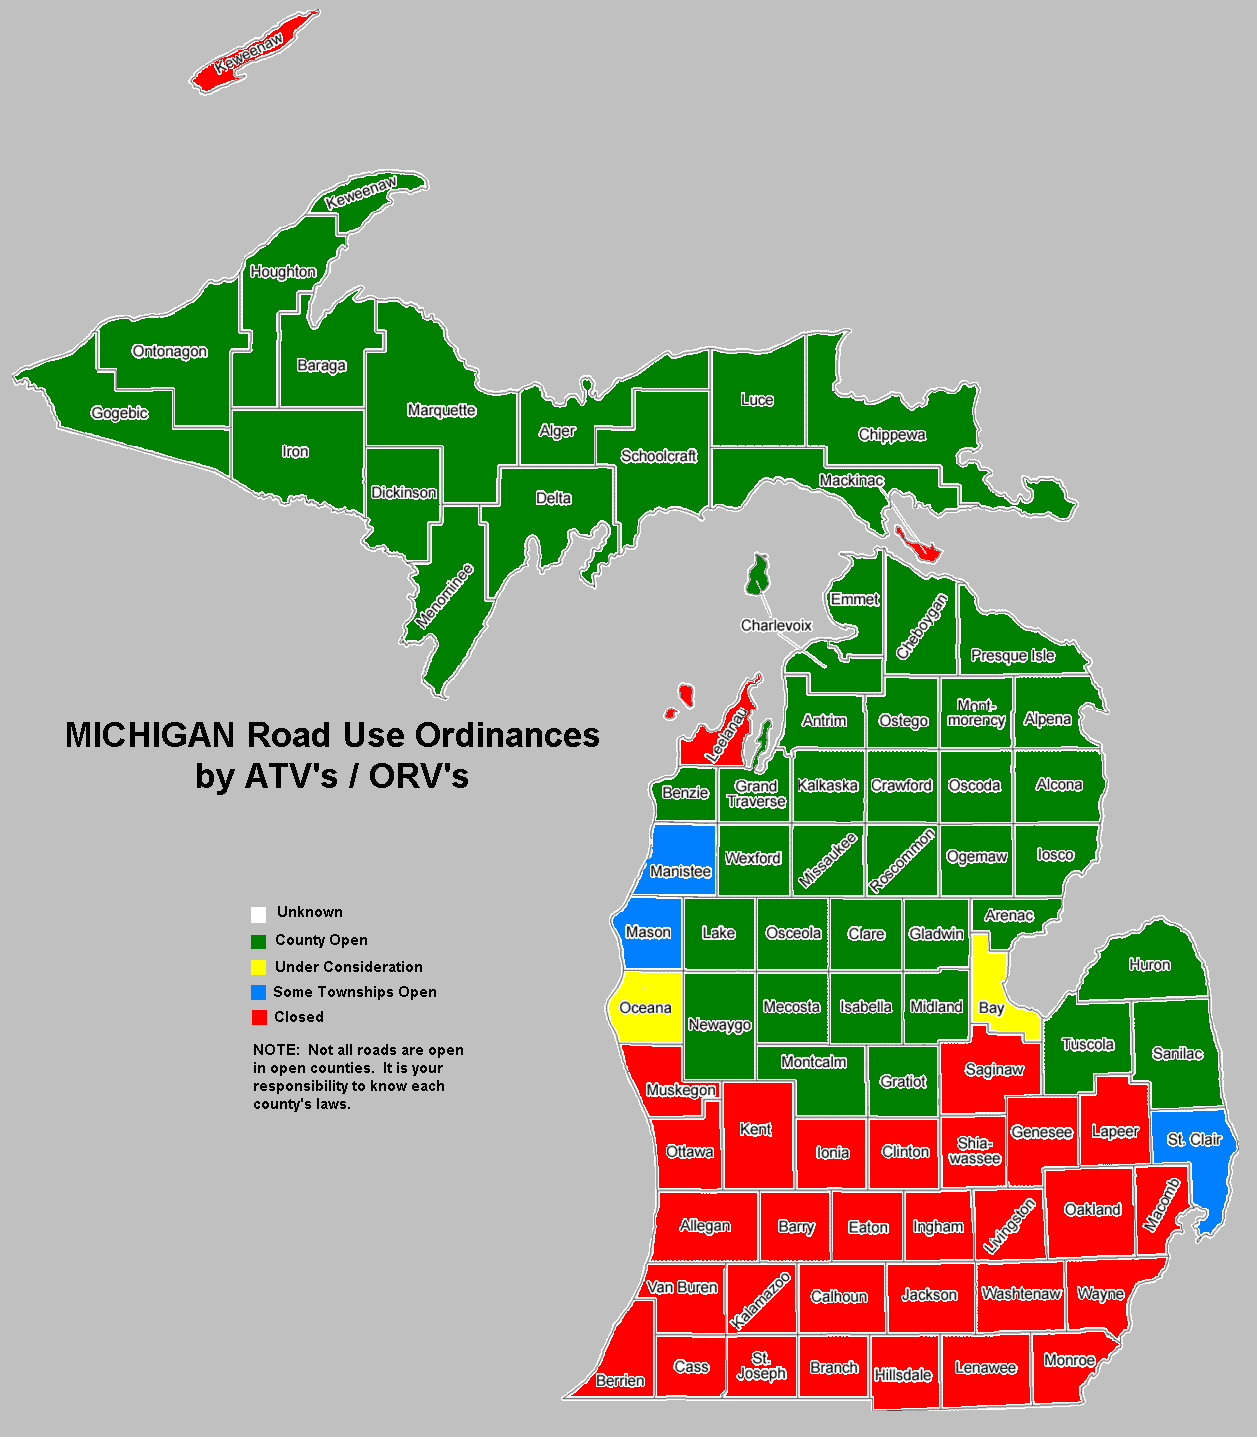 Michigan ORV regulations by county